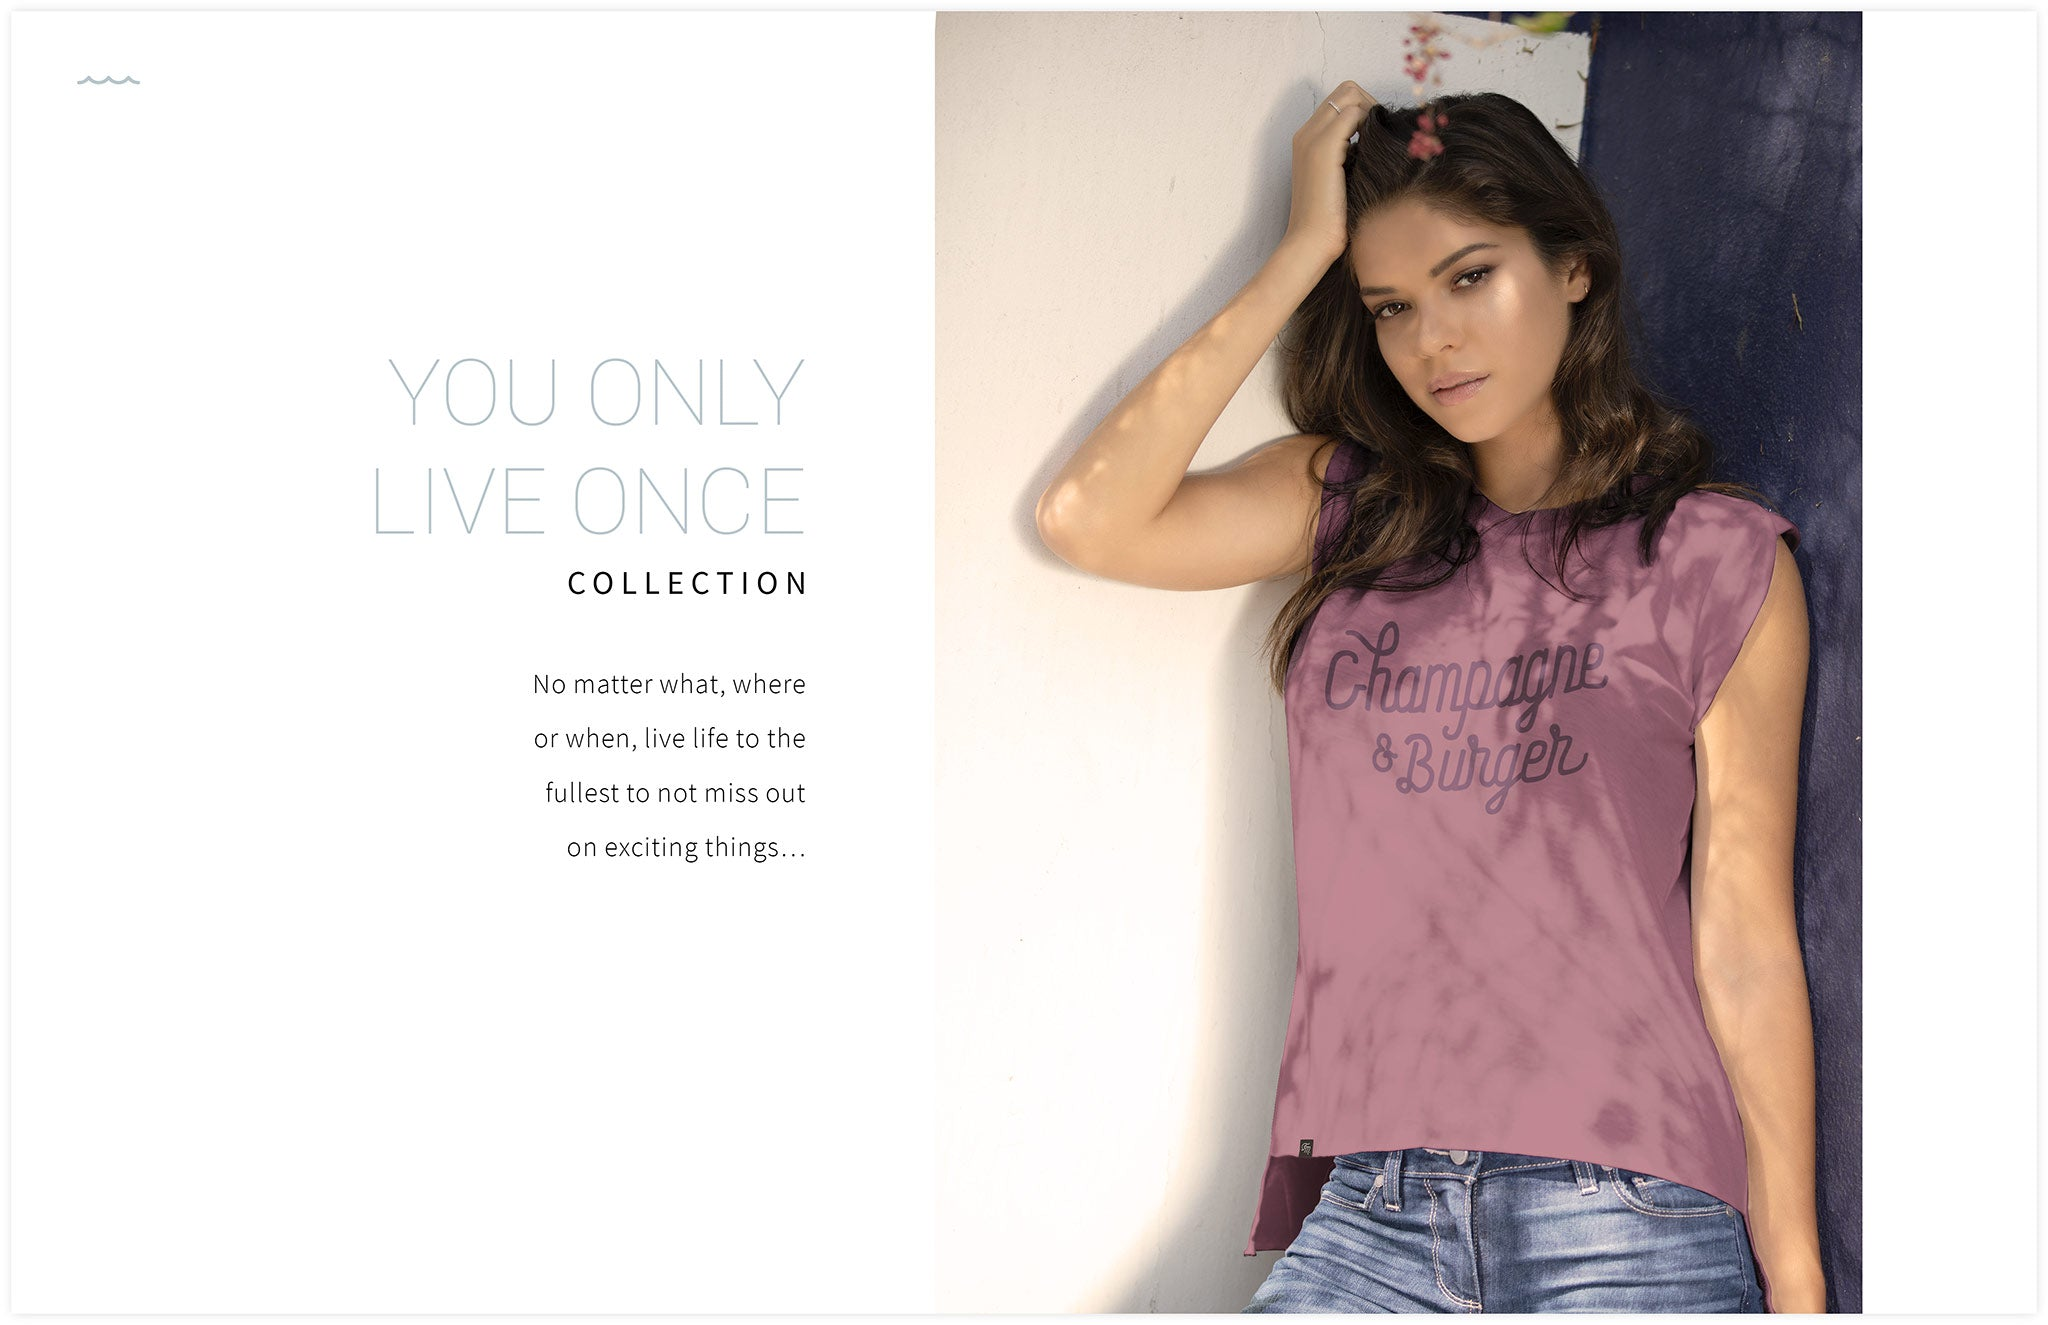 FRESH MOOD LOOK BOOK 2018 || YOU ONLY LIVE ONCE PRINTED APPAREL DESIGN COLLECTION